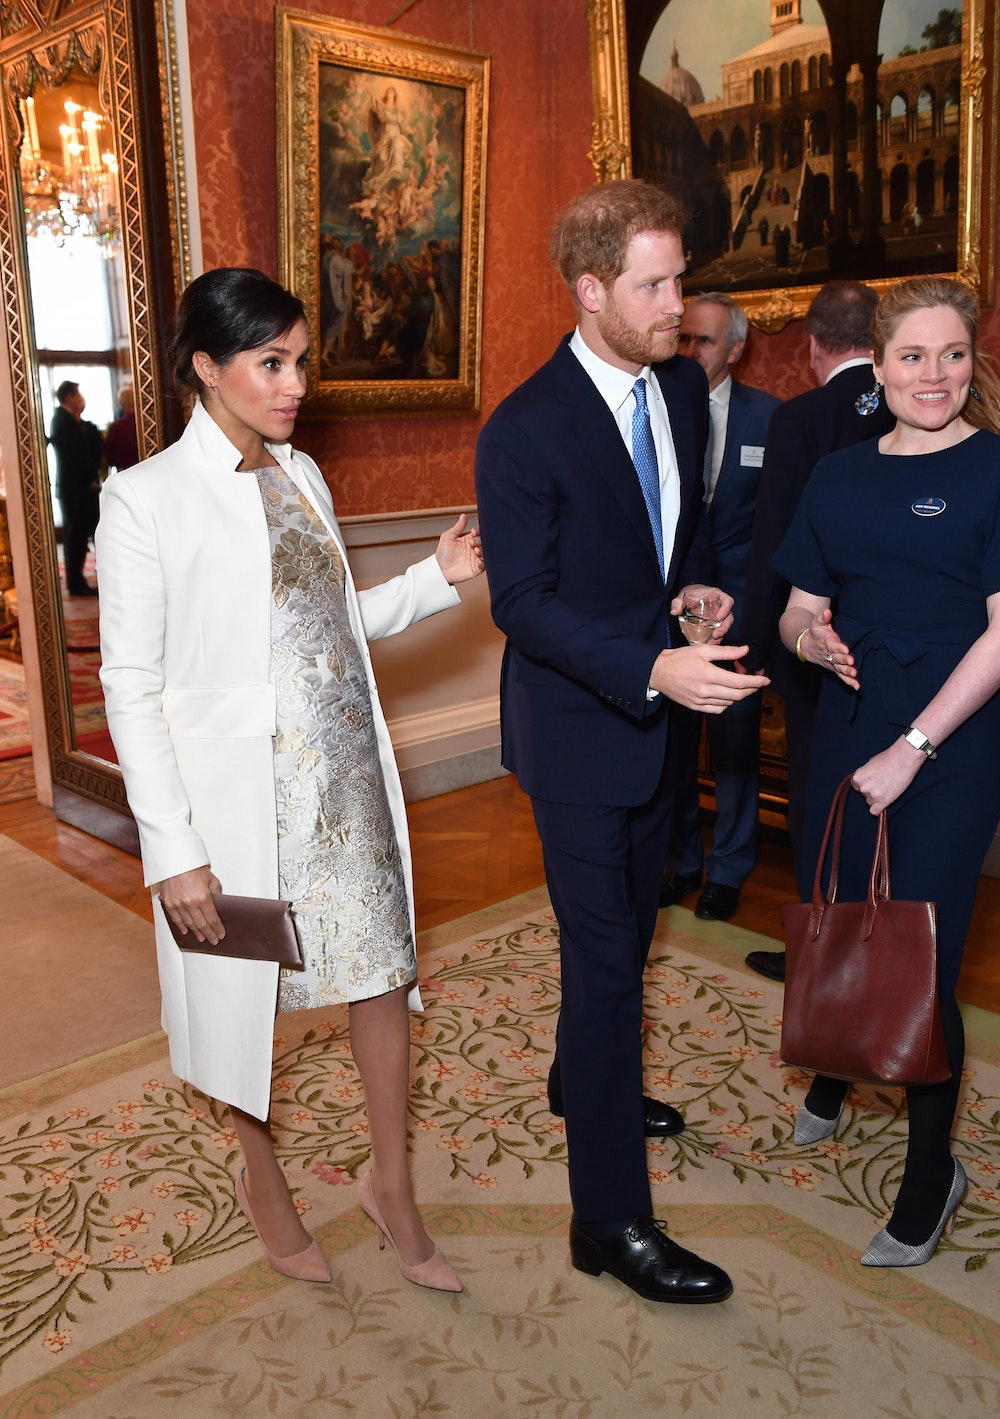 Duke and Duchess of Sussex at the reception at Buckingham Palace